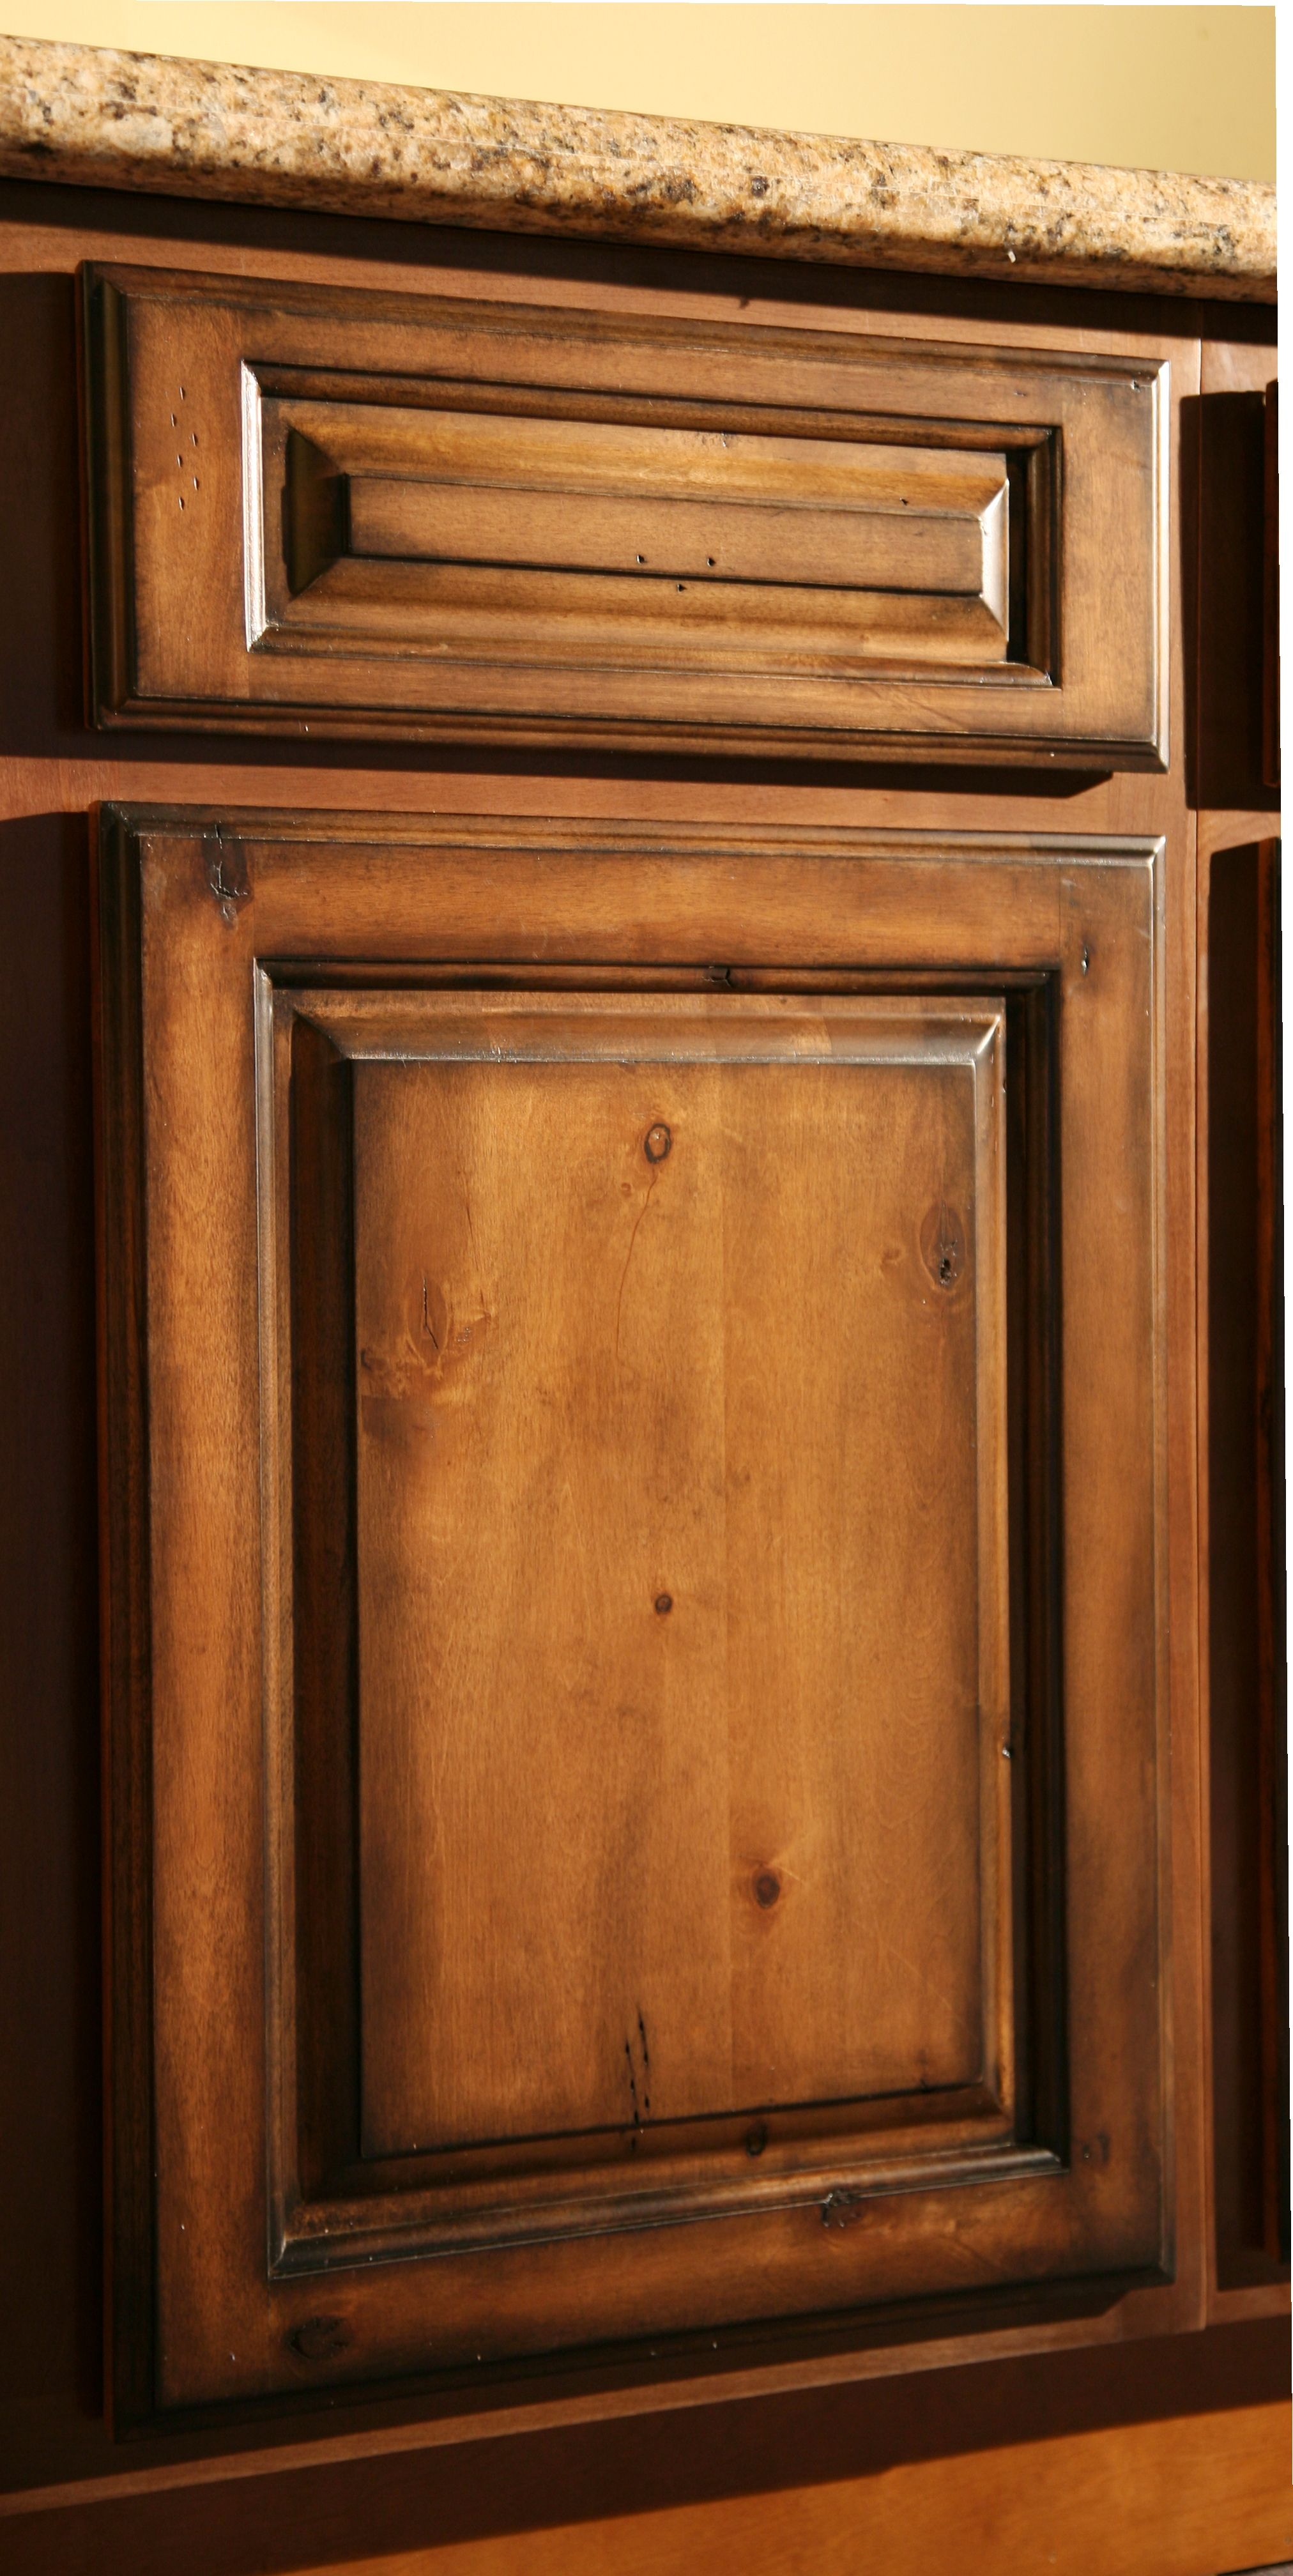 pecan maple glaze kitchen cabinets rustic finish sample door rta - Cabinet Door Design Ideas